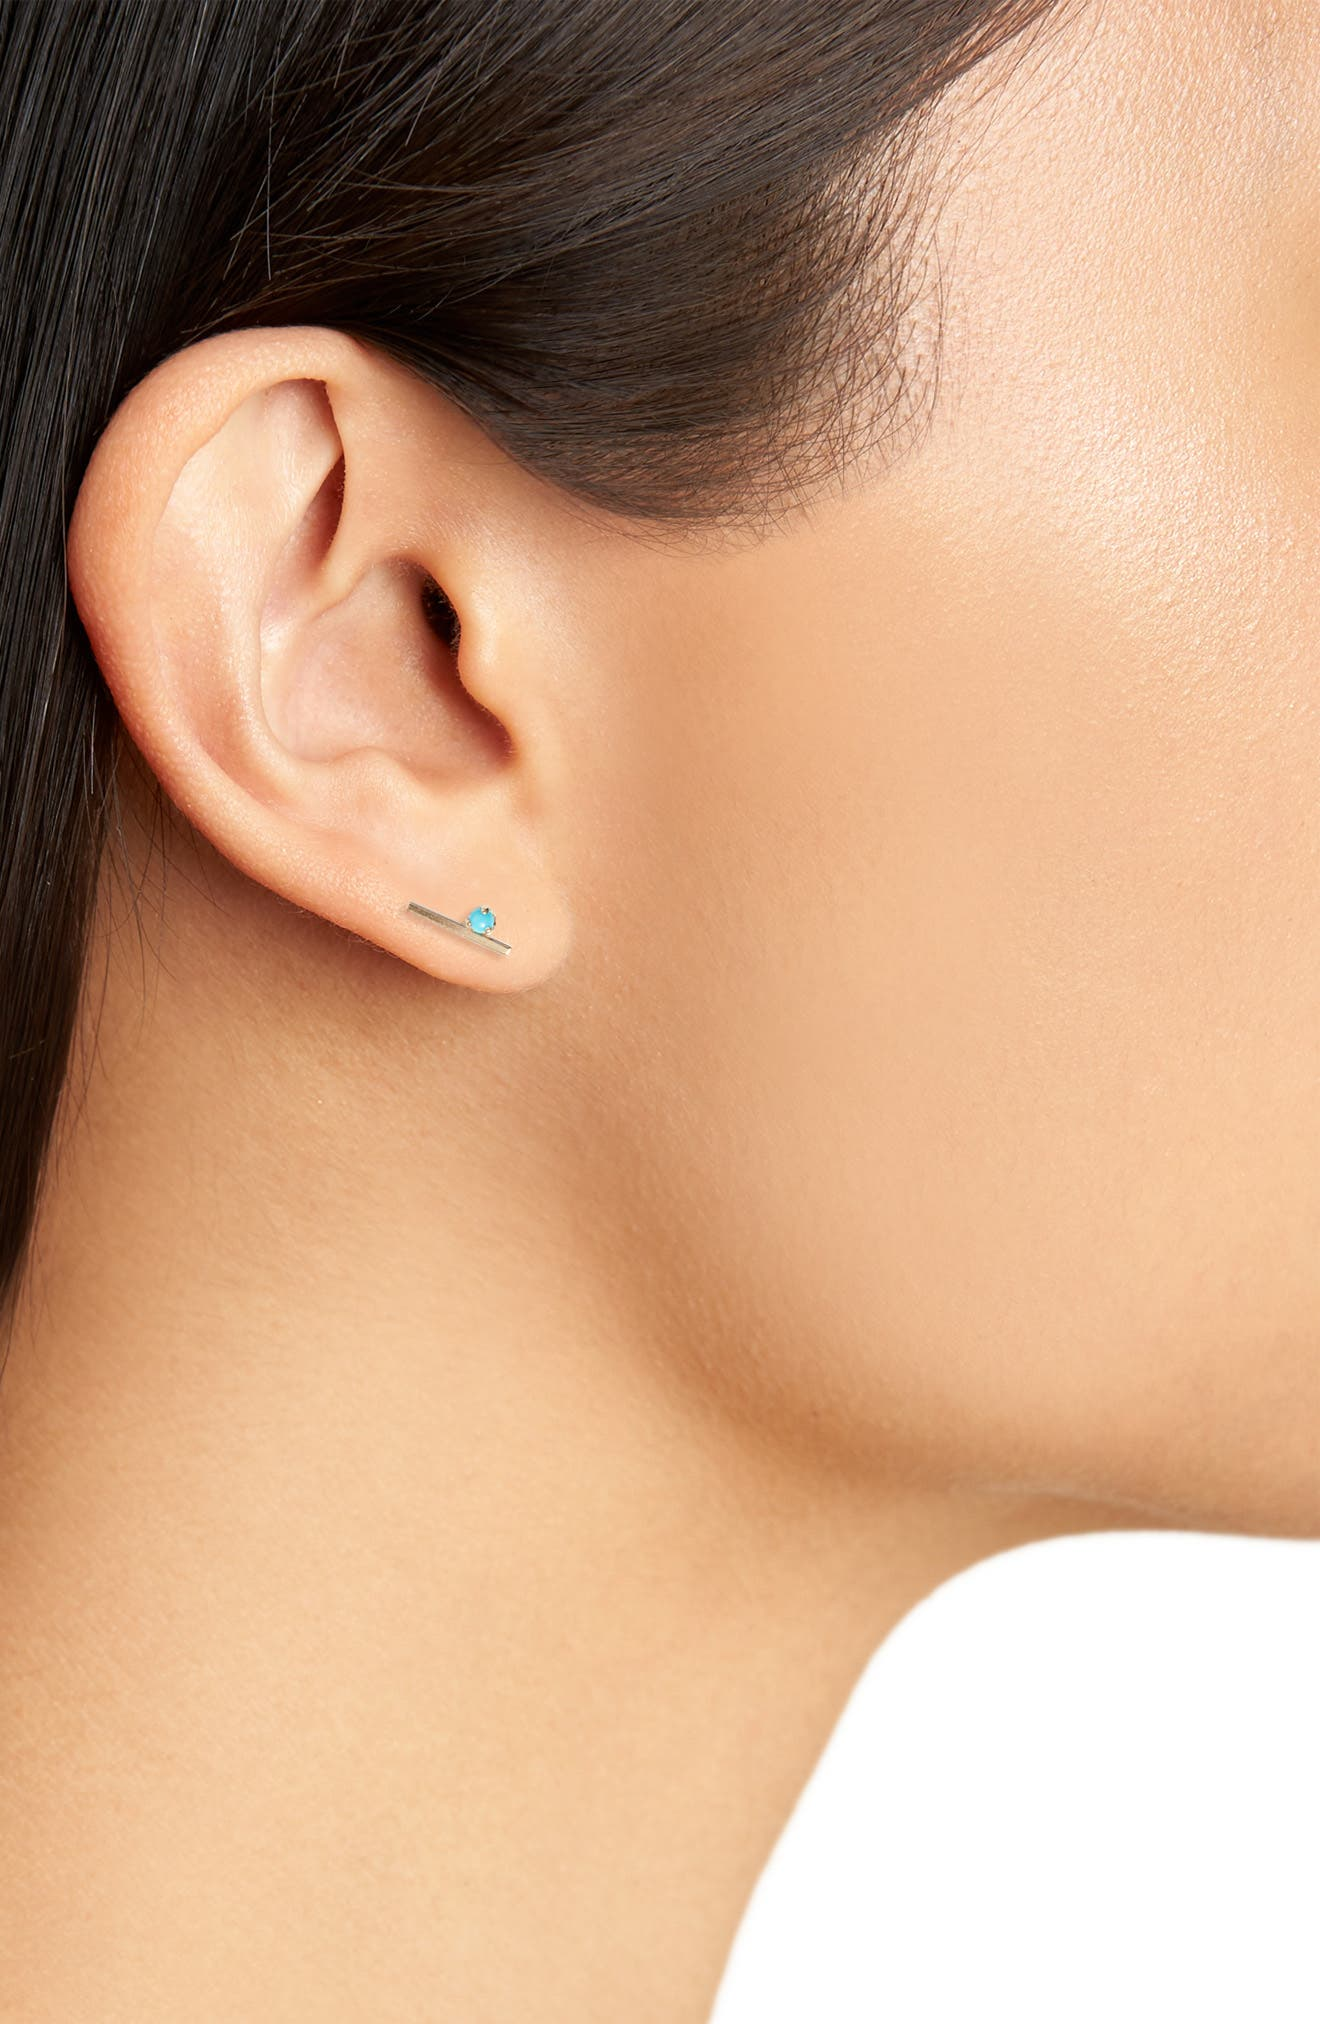 Floating Bar Turquoise Stud Earrings,                             Alternate thumbnail 2, color,                             Yellow Gold/ Turquoise